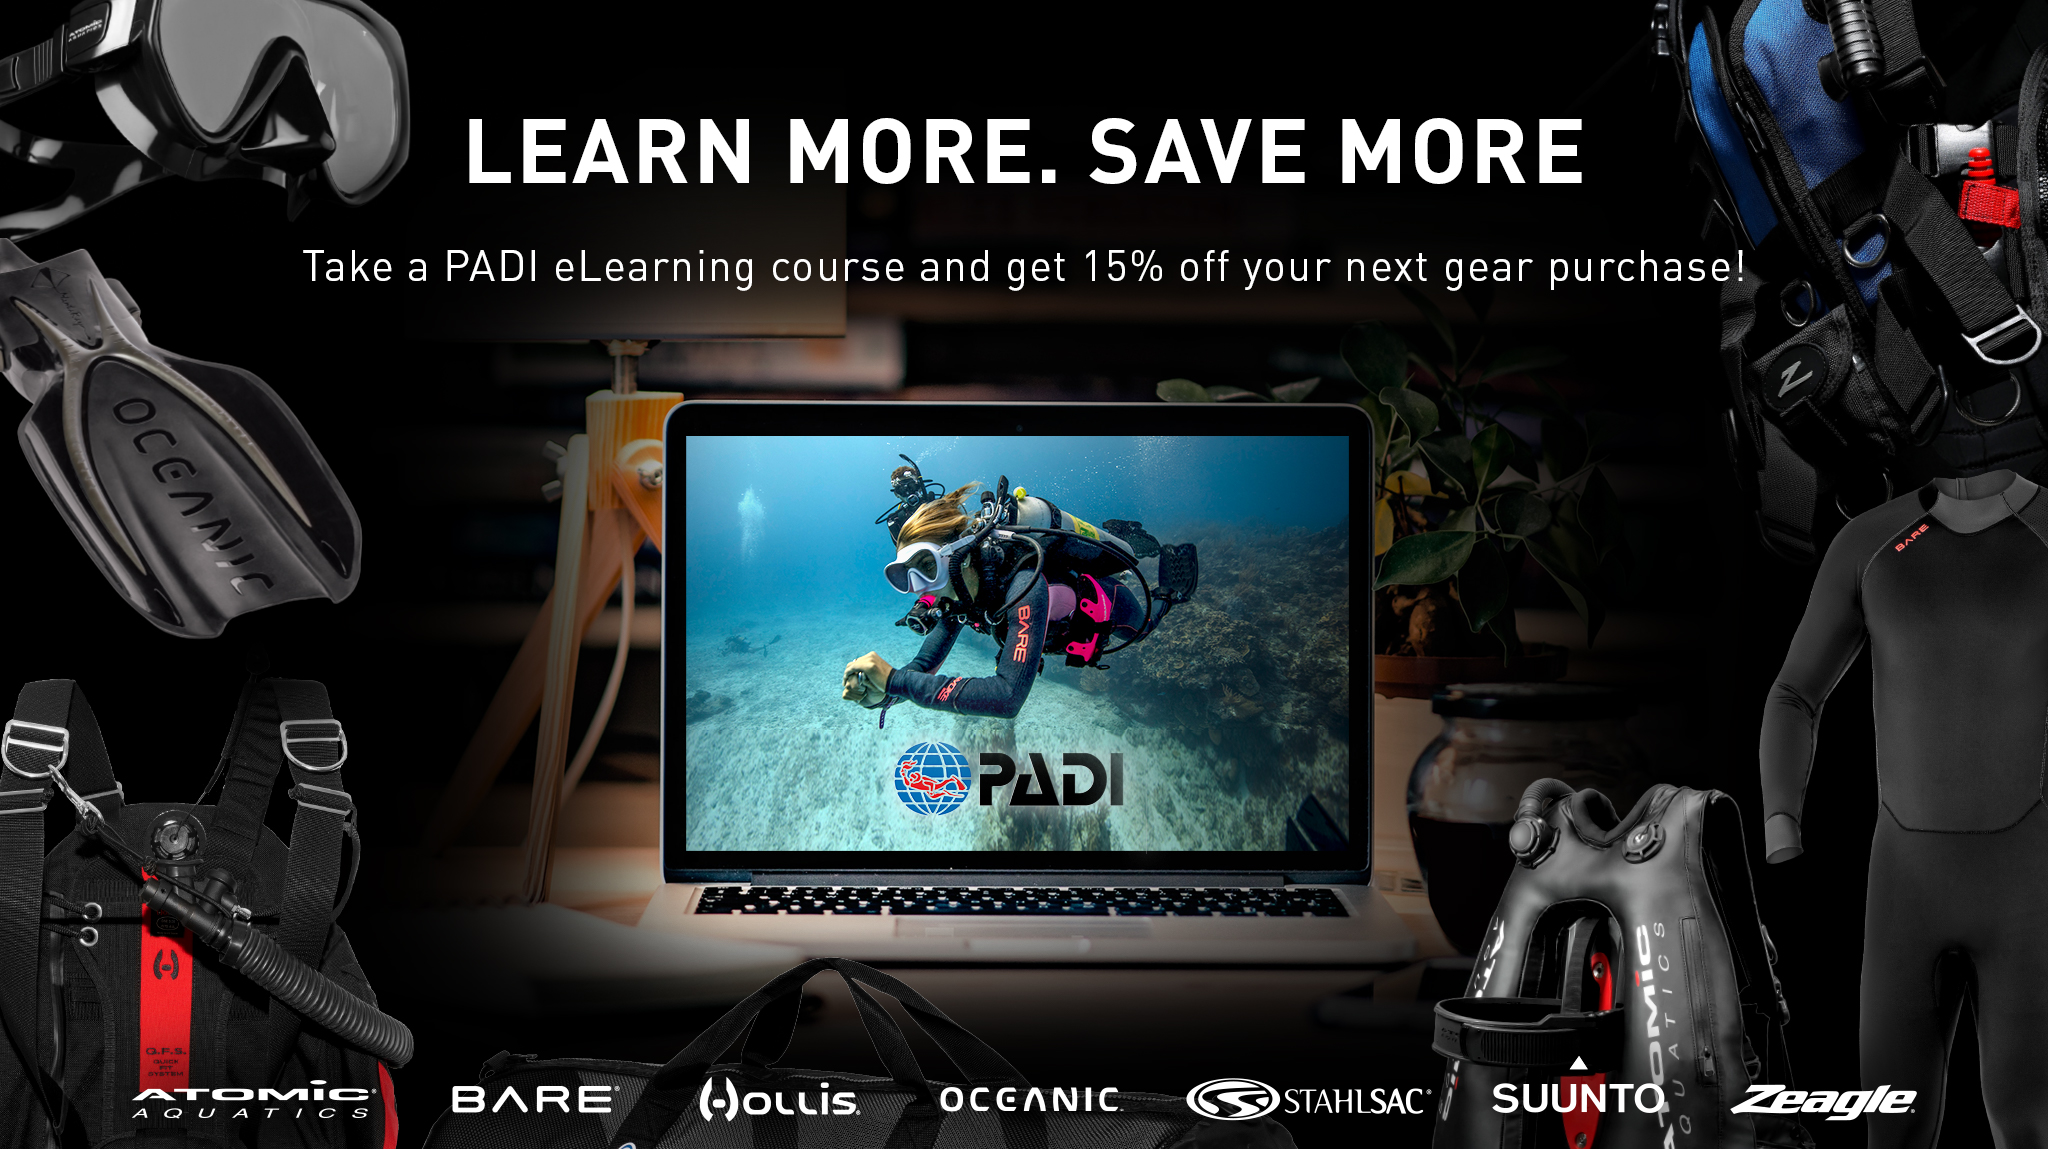 Summer Of Savings! Save On Gear And Travel